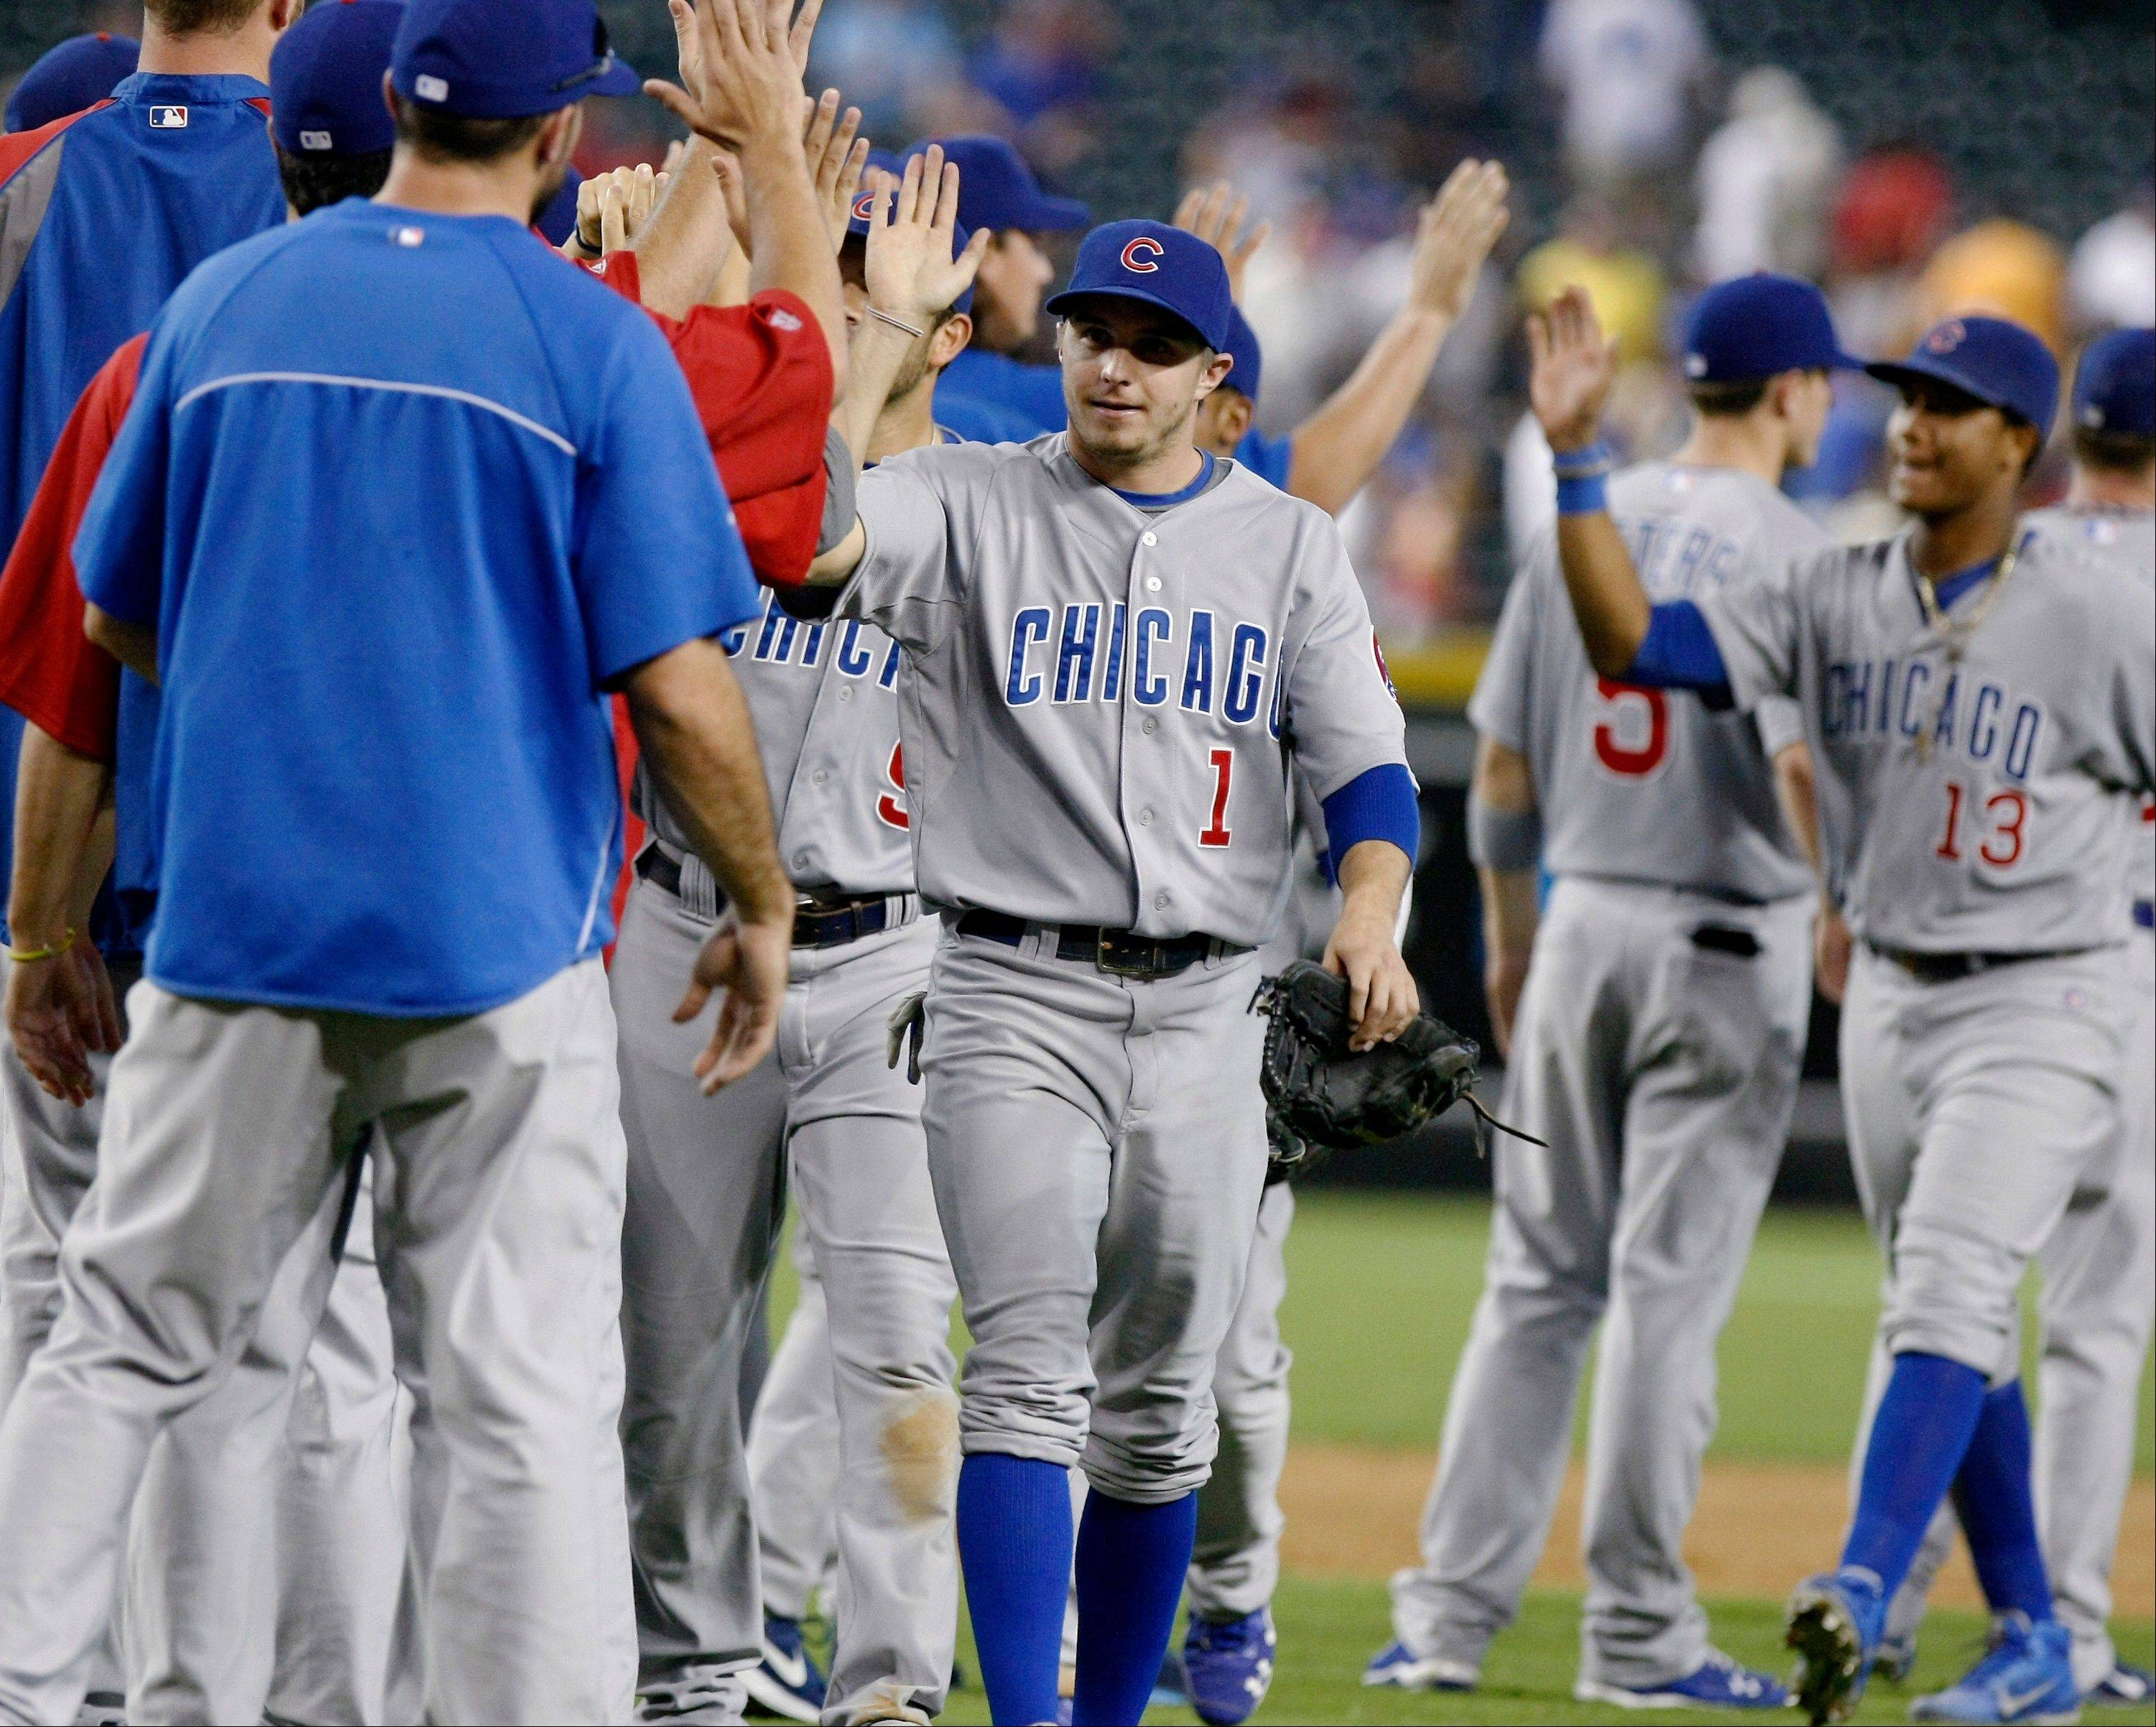 Cubs center fielder Tony Campana and teammates celebrate Sunday after defeating the Arizona Diamondbacks 7-2.